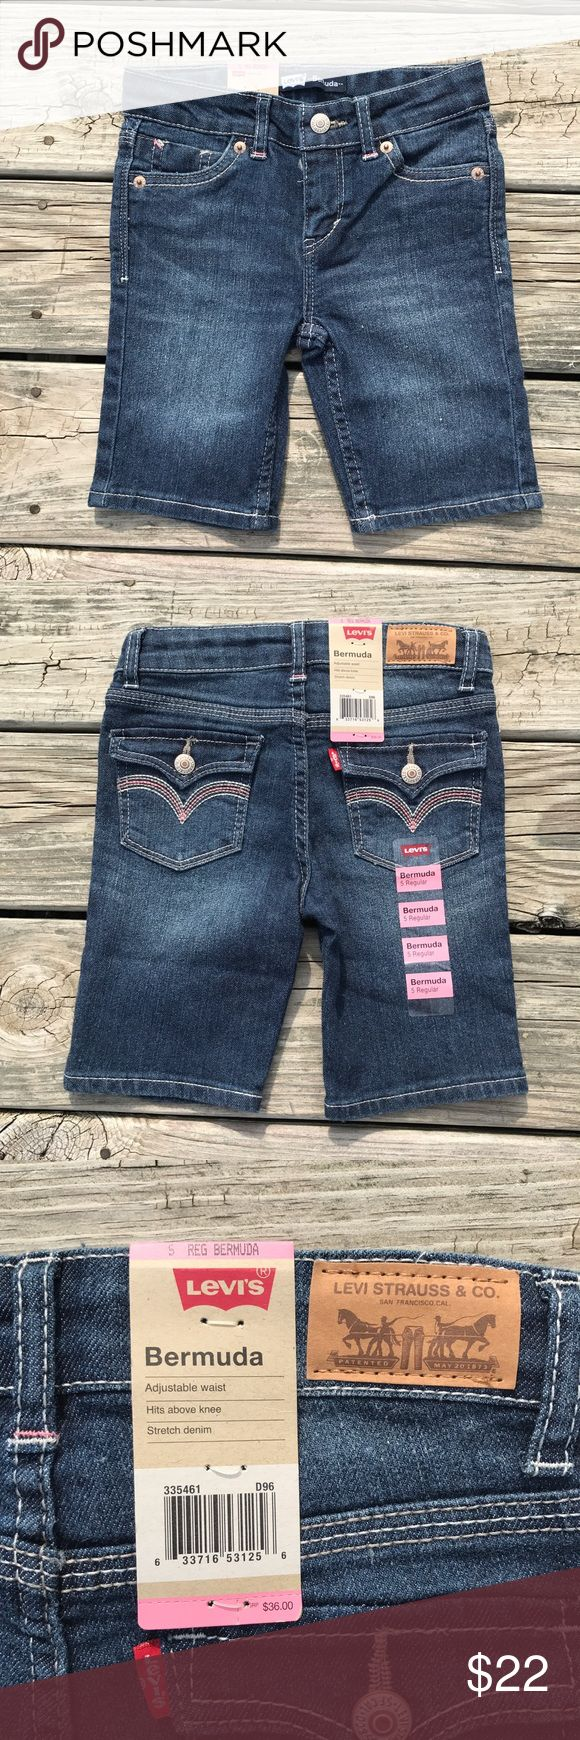 NWT Levi's Bermuda Shorts New With Tags girl's Levi's Bermuda shorts. Adjustable waist, size 5 regular. Levi's Bottoms Shorts